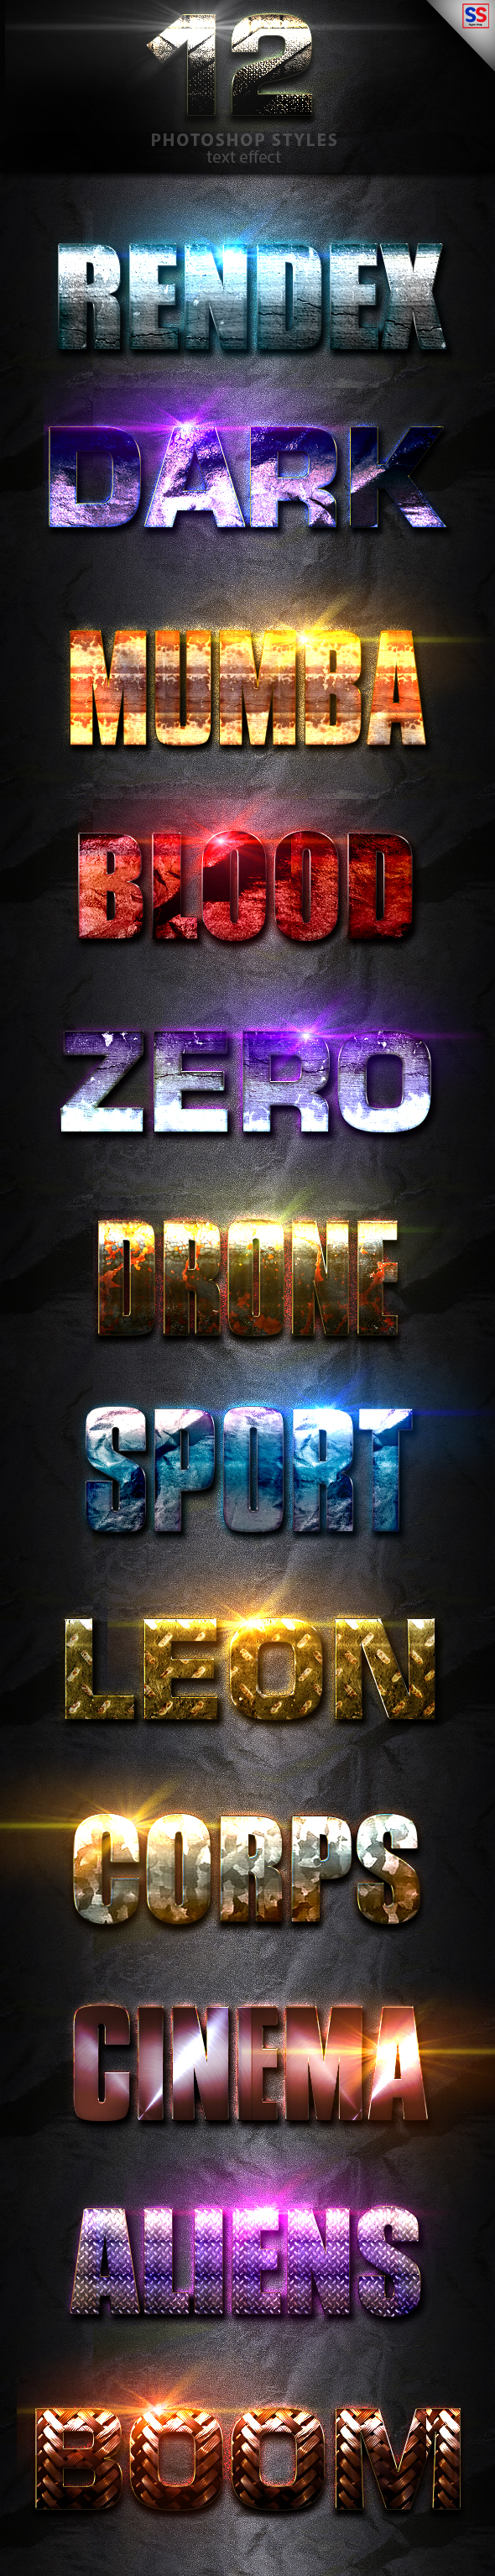 12 Light Photoshop Text Effect Vol 3 - Text Effects Styles